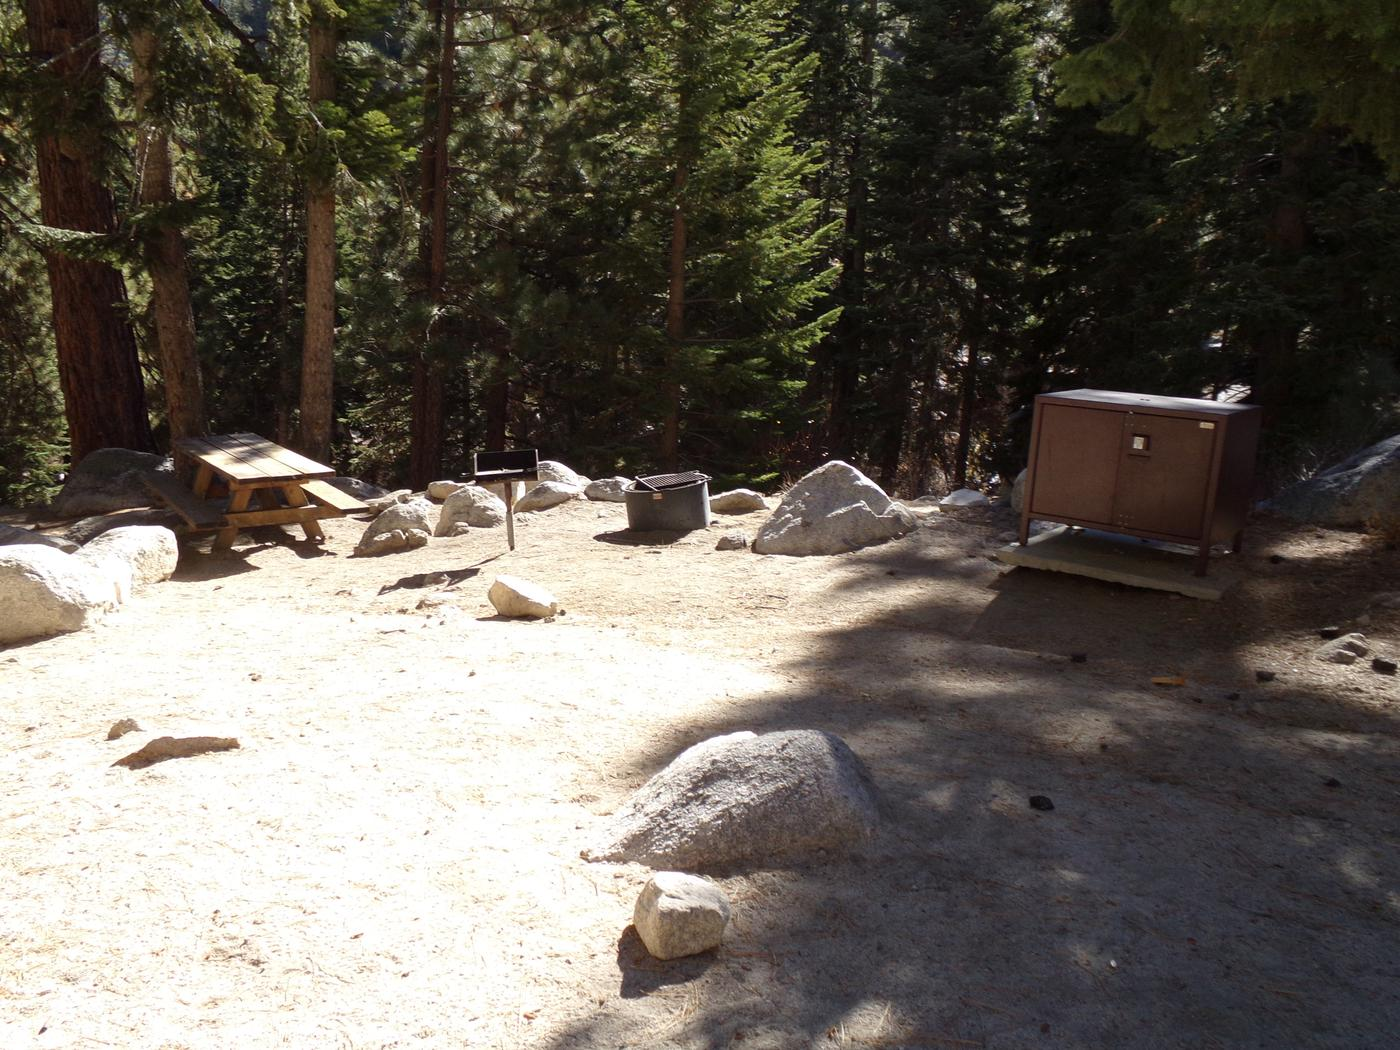 Mt. Whitney Portal Campground site #40 featuring the mountain top setting picnic area and camping space.